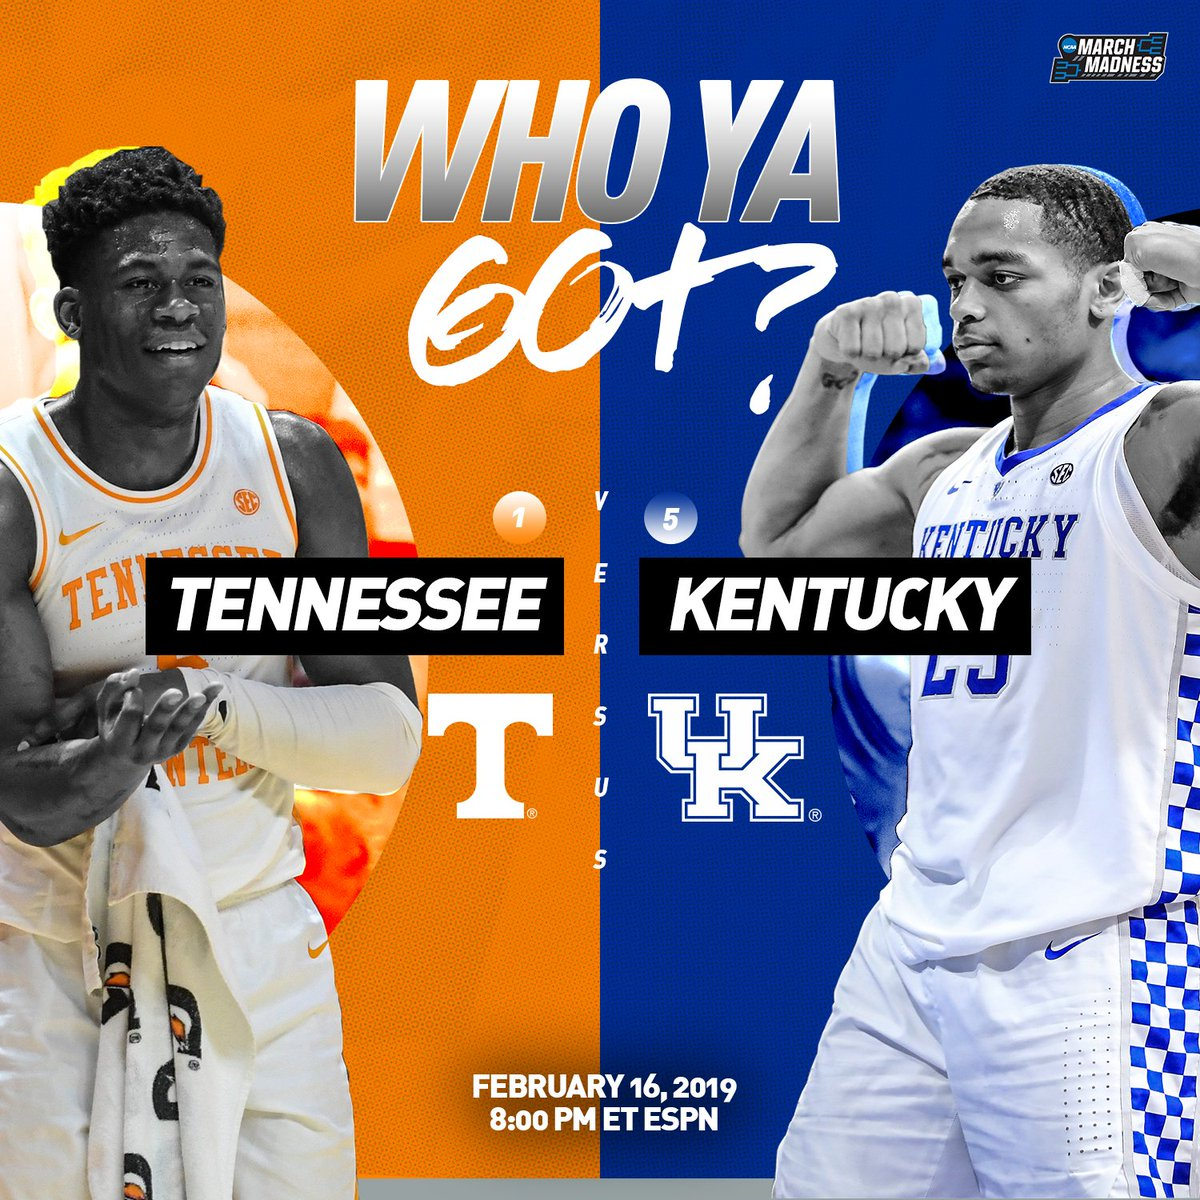 It's going down in Rupp Arena. 🔥  No. 1 Tennessee. No. 5 Kentucky. Who ya got?